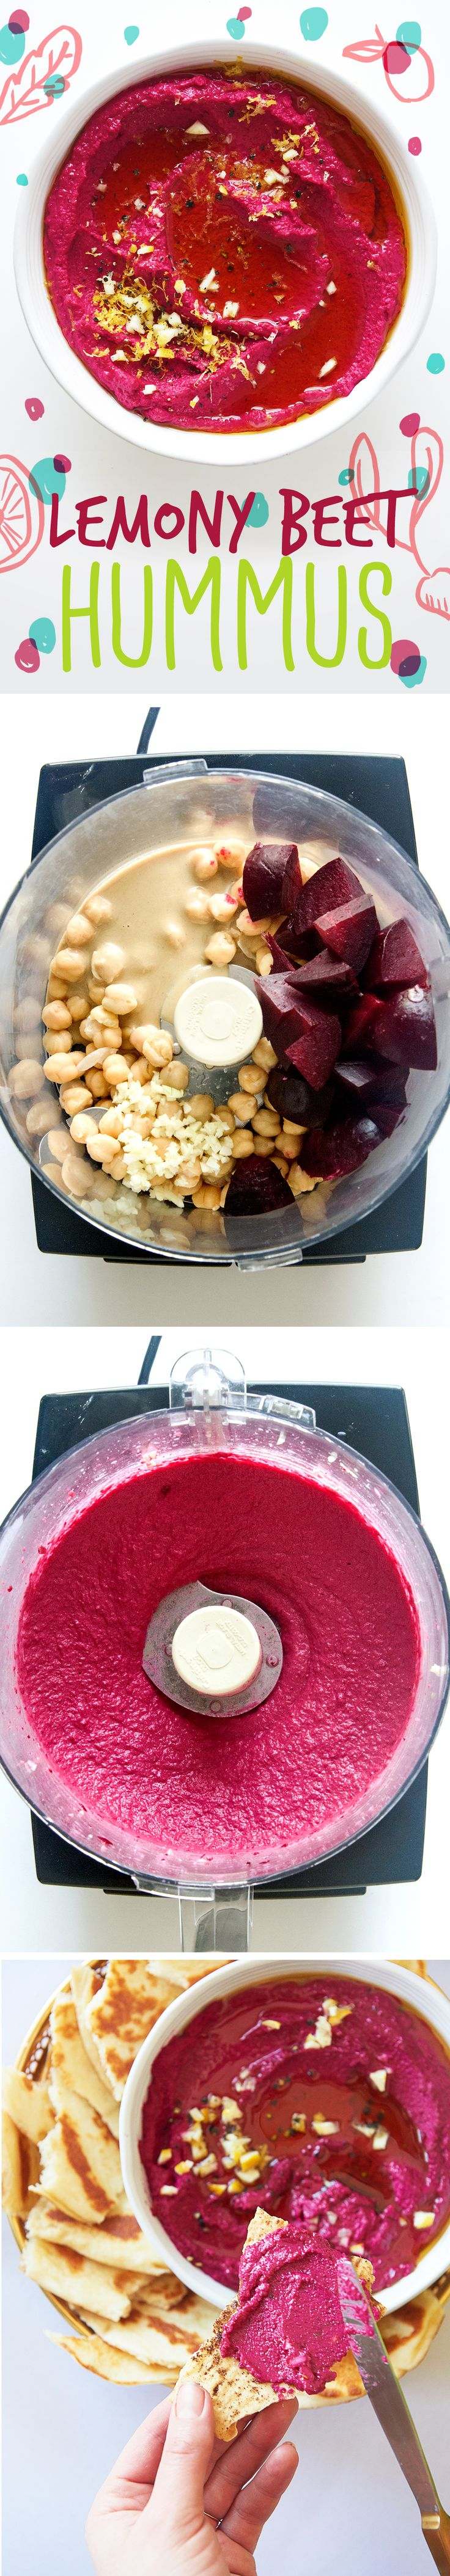 roasted beet hummus | healthy recipe ideas @xhealthyrecipex |